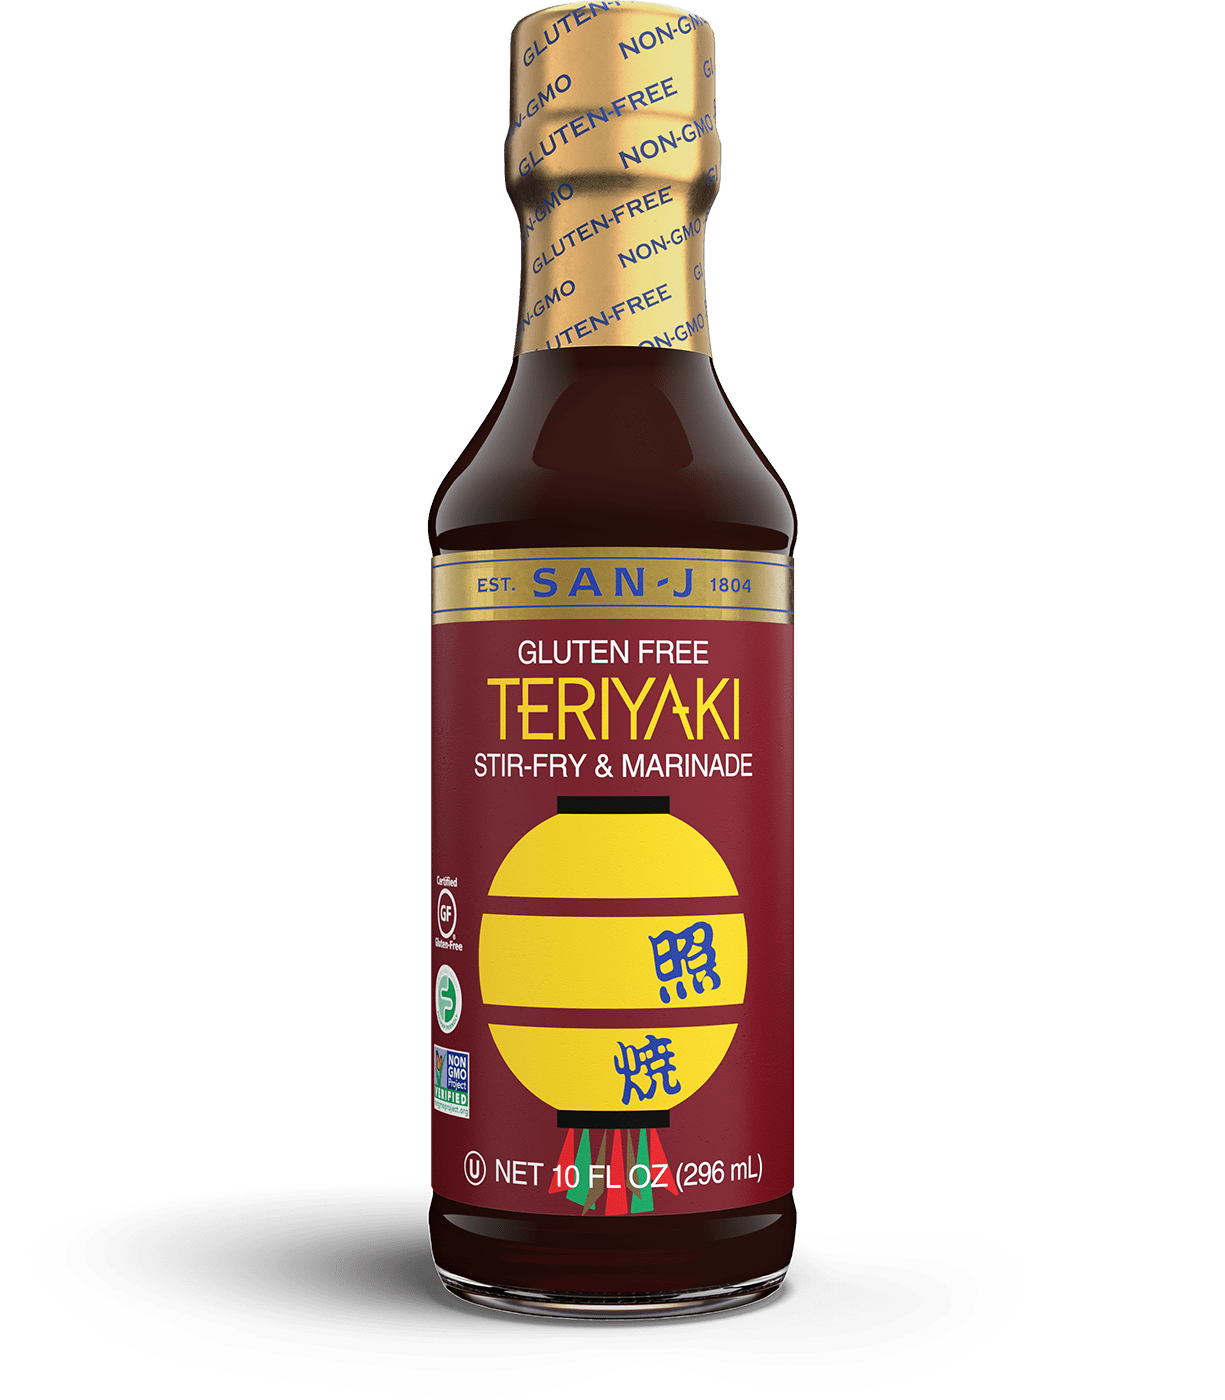 San j teriyaki asian cooking sauce 2021